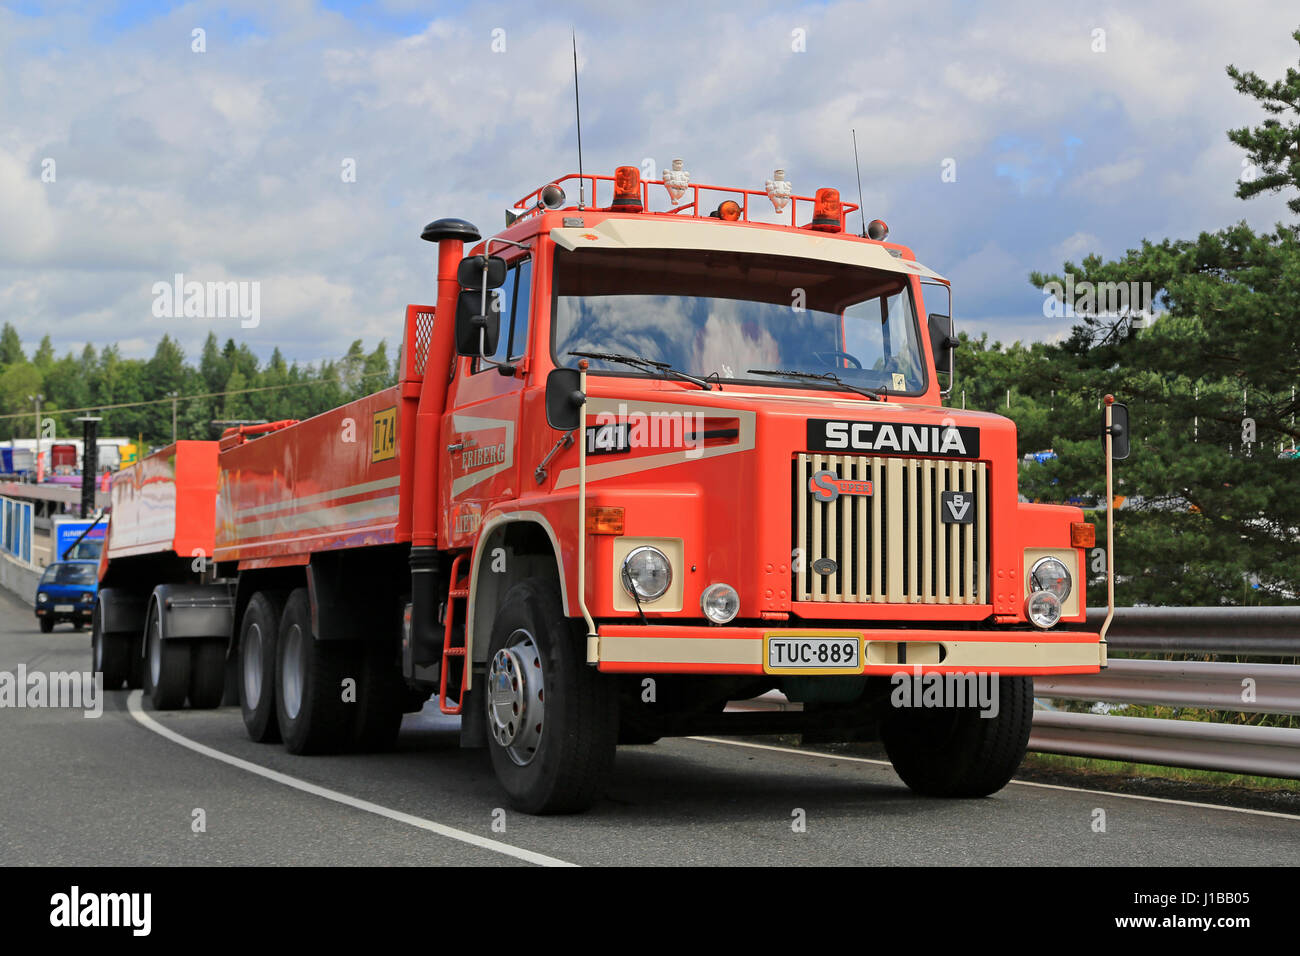 HAMEENLINNA, FINLAND - JULY 16, 2016: Red conventional Scania 141 combination vehicle for construction of Tarmo - Stock Image